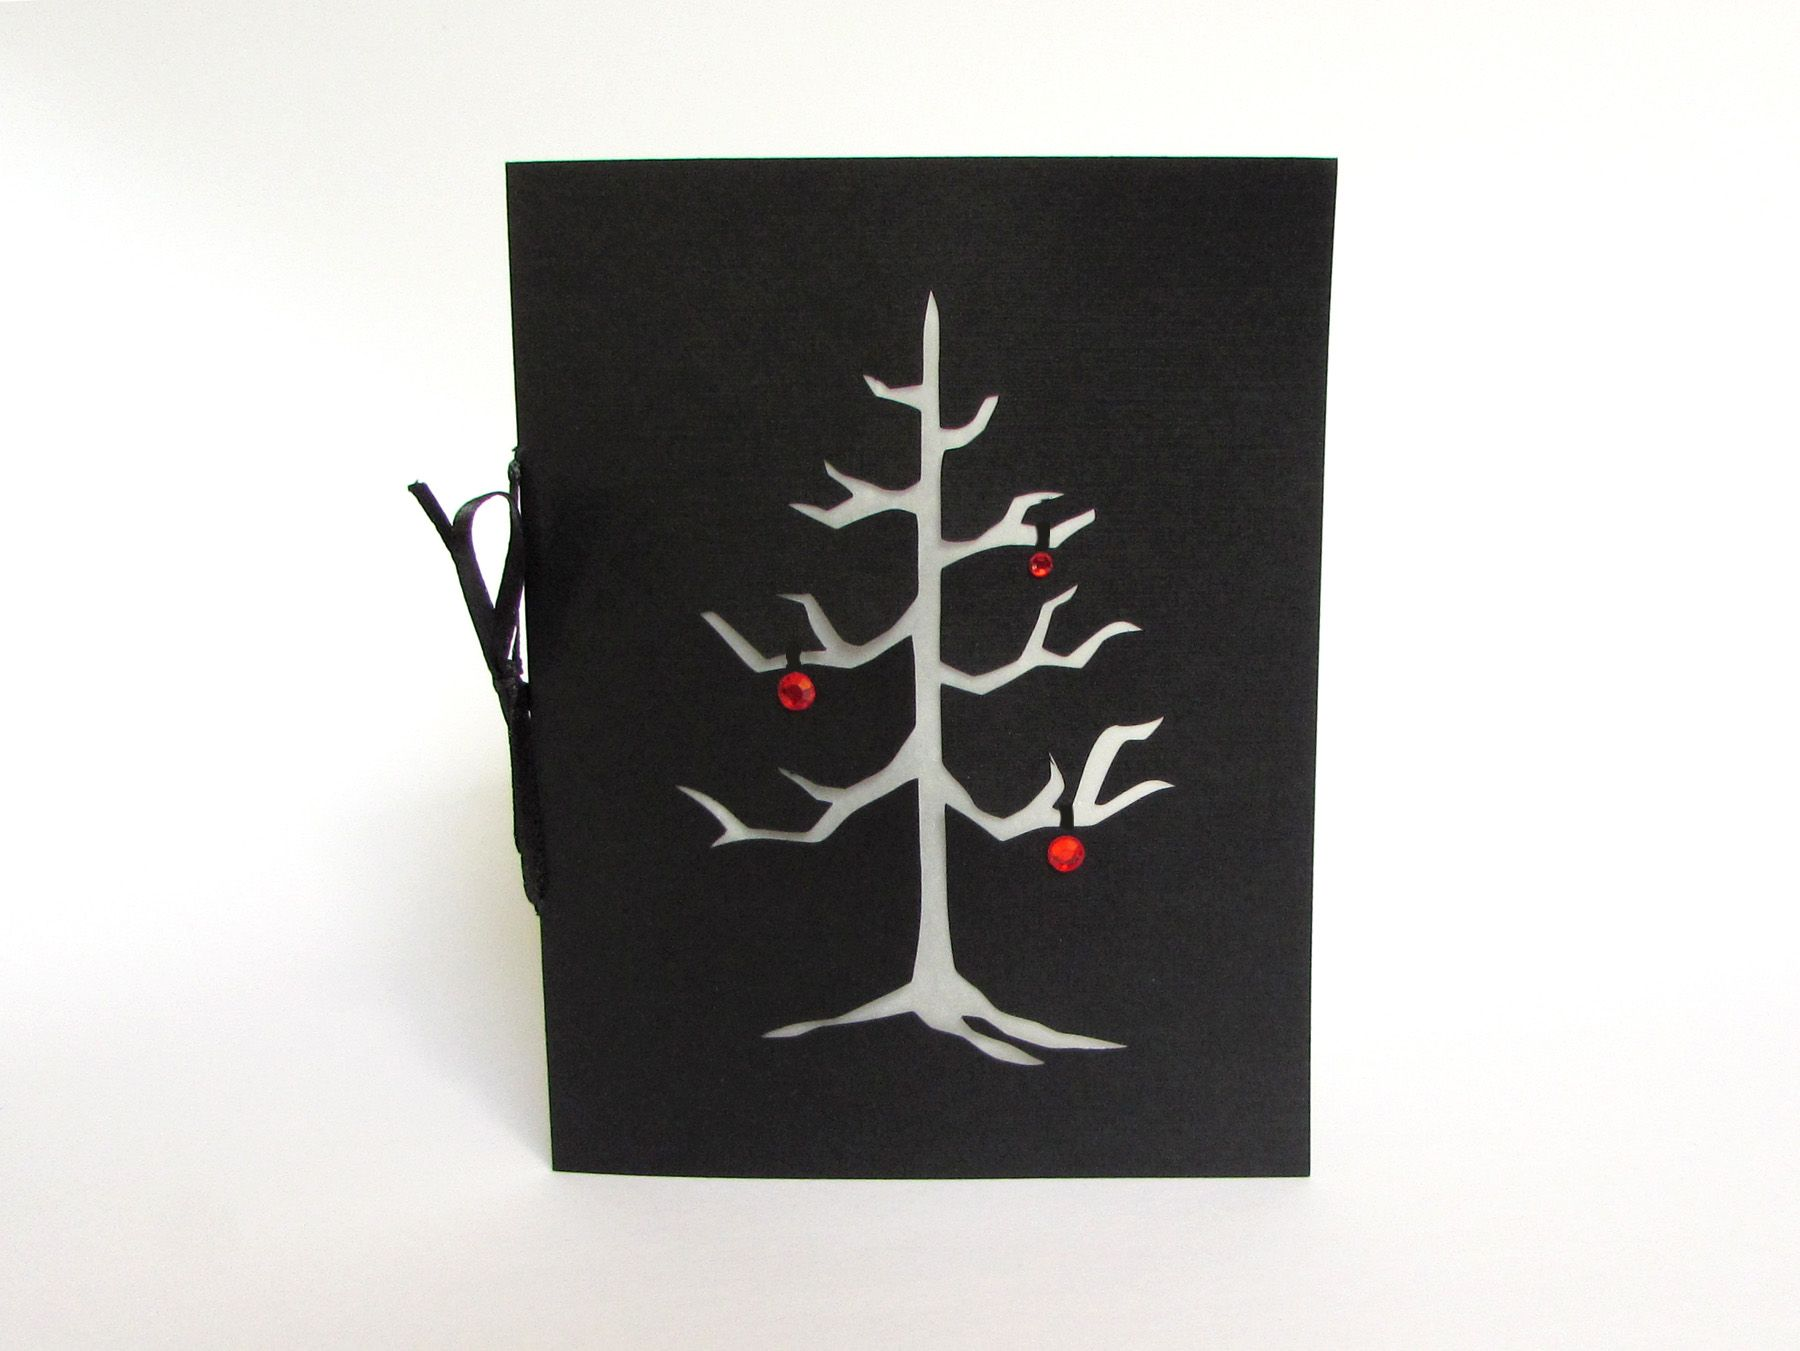 Buy A Hand Made Gothic Christmas Tree Black Silhouette